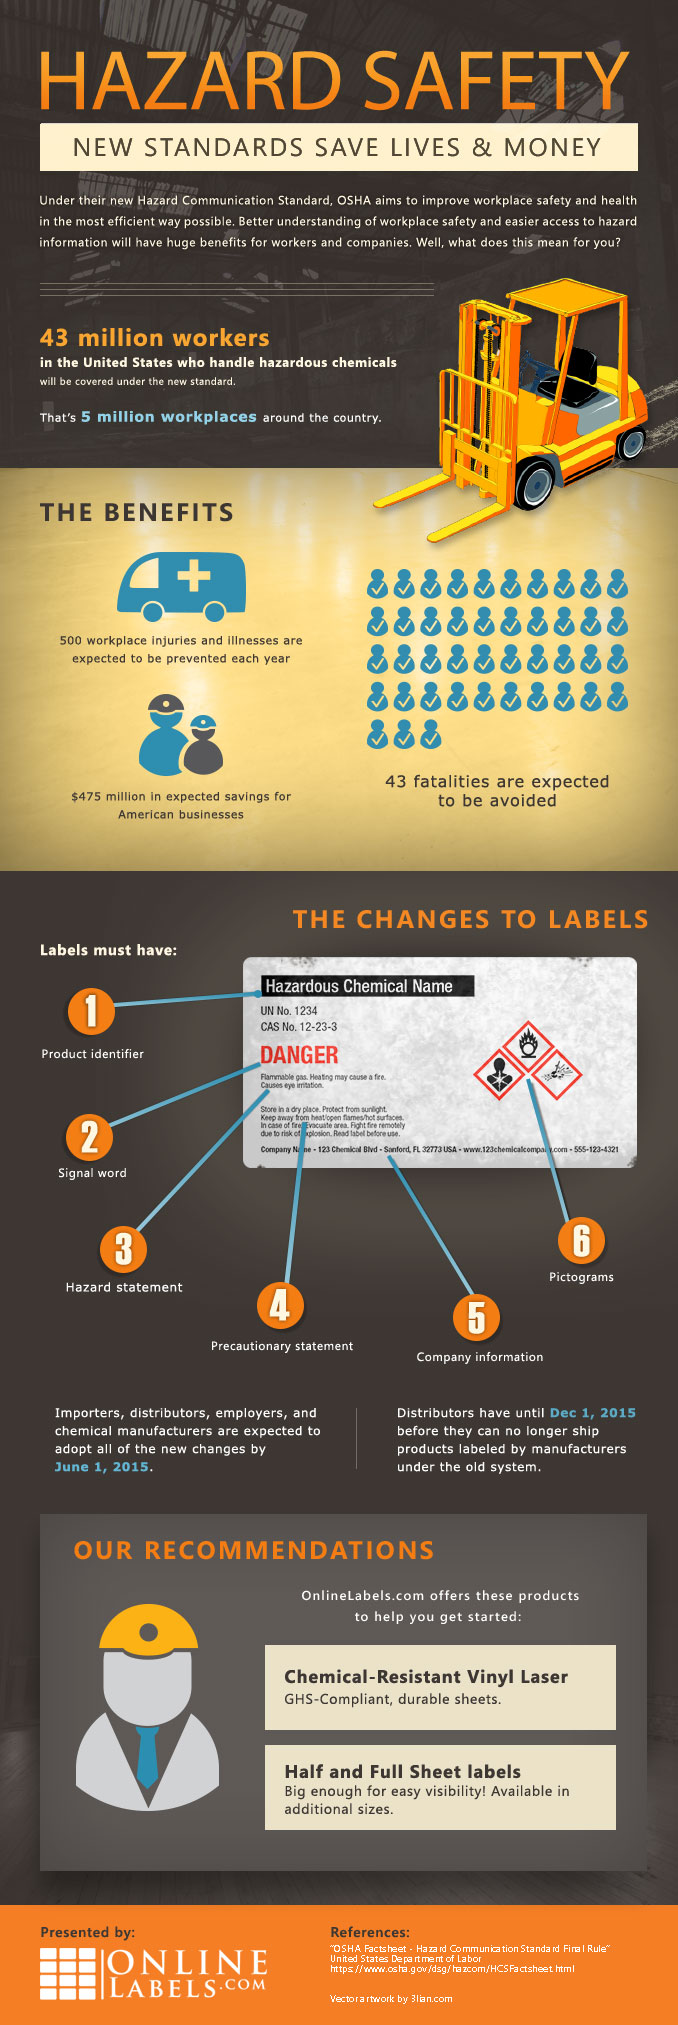 Infographic for OSHA's new hazard communication label standards